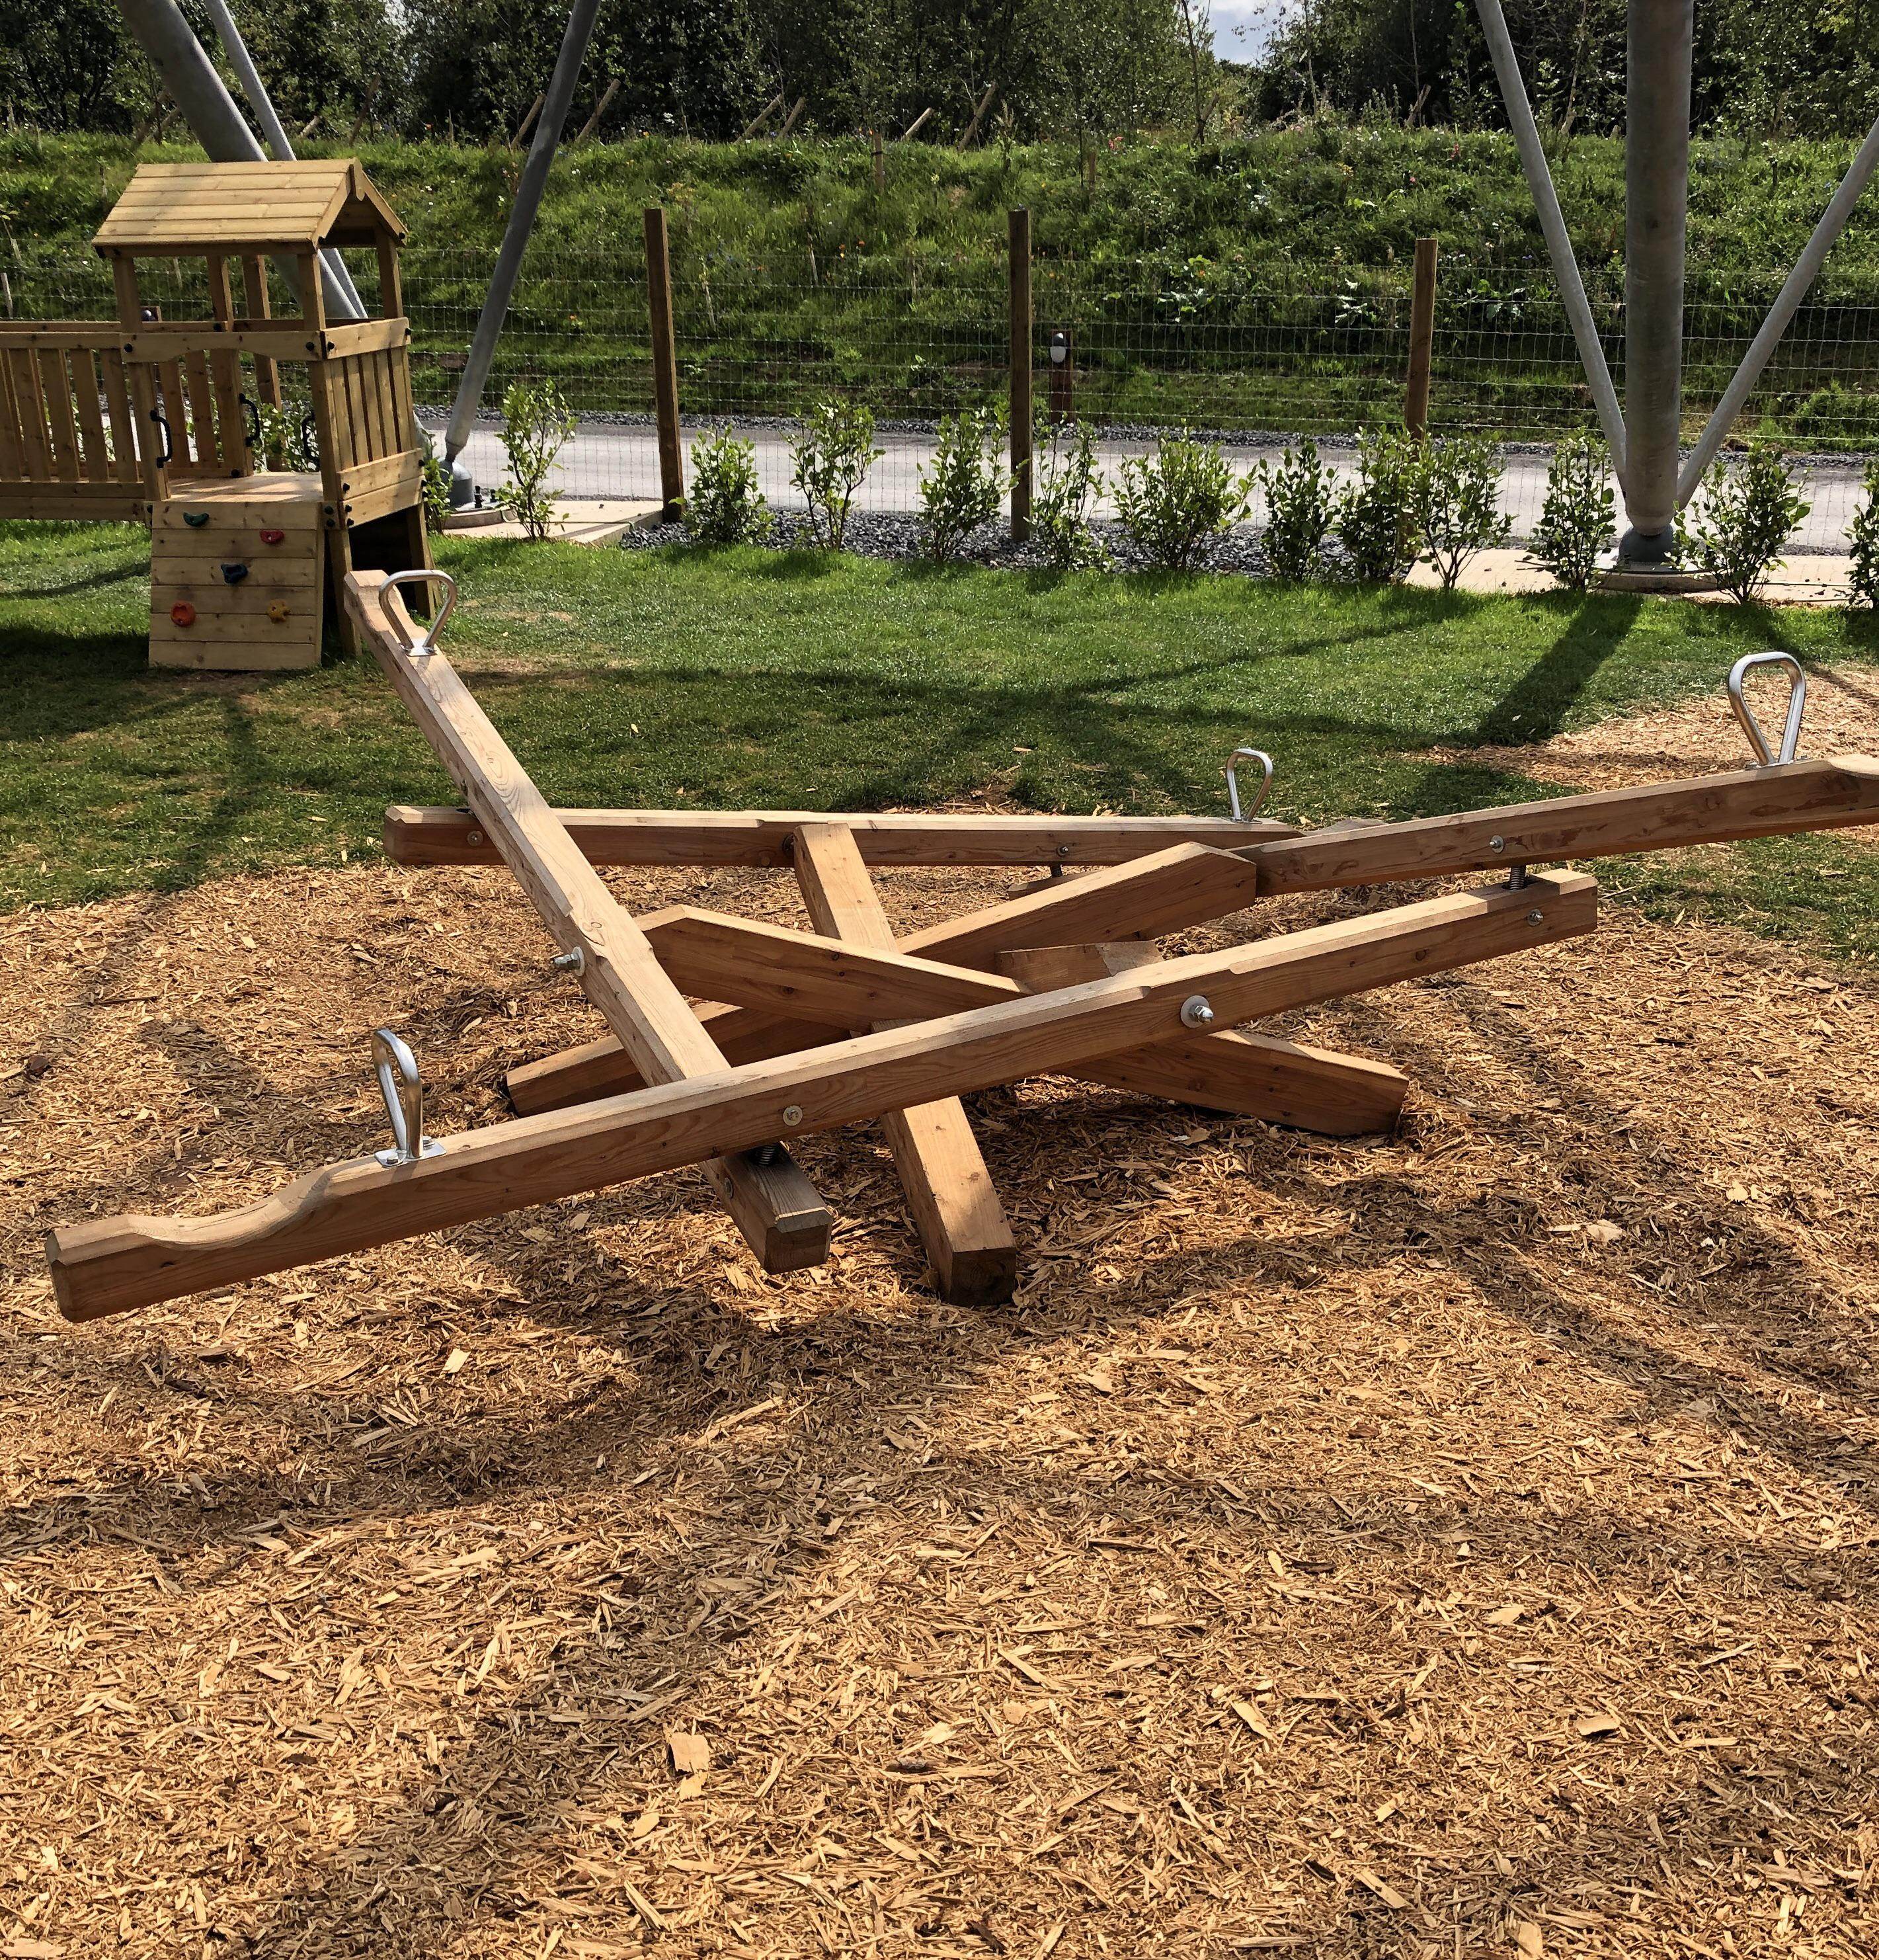 A seesaw for four